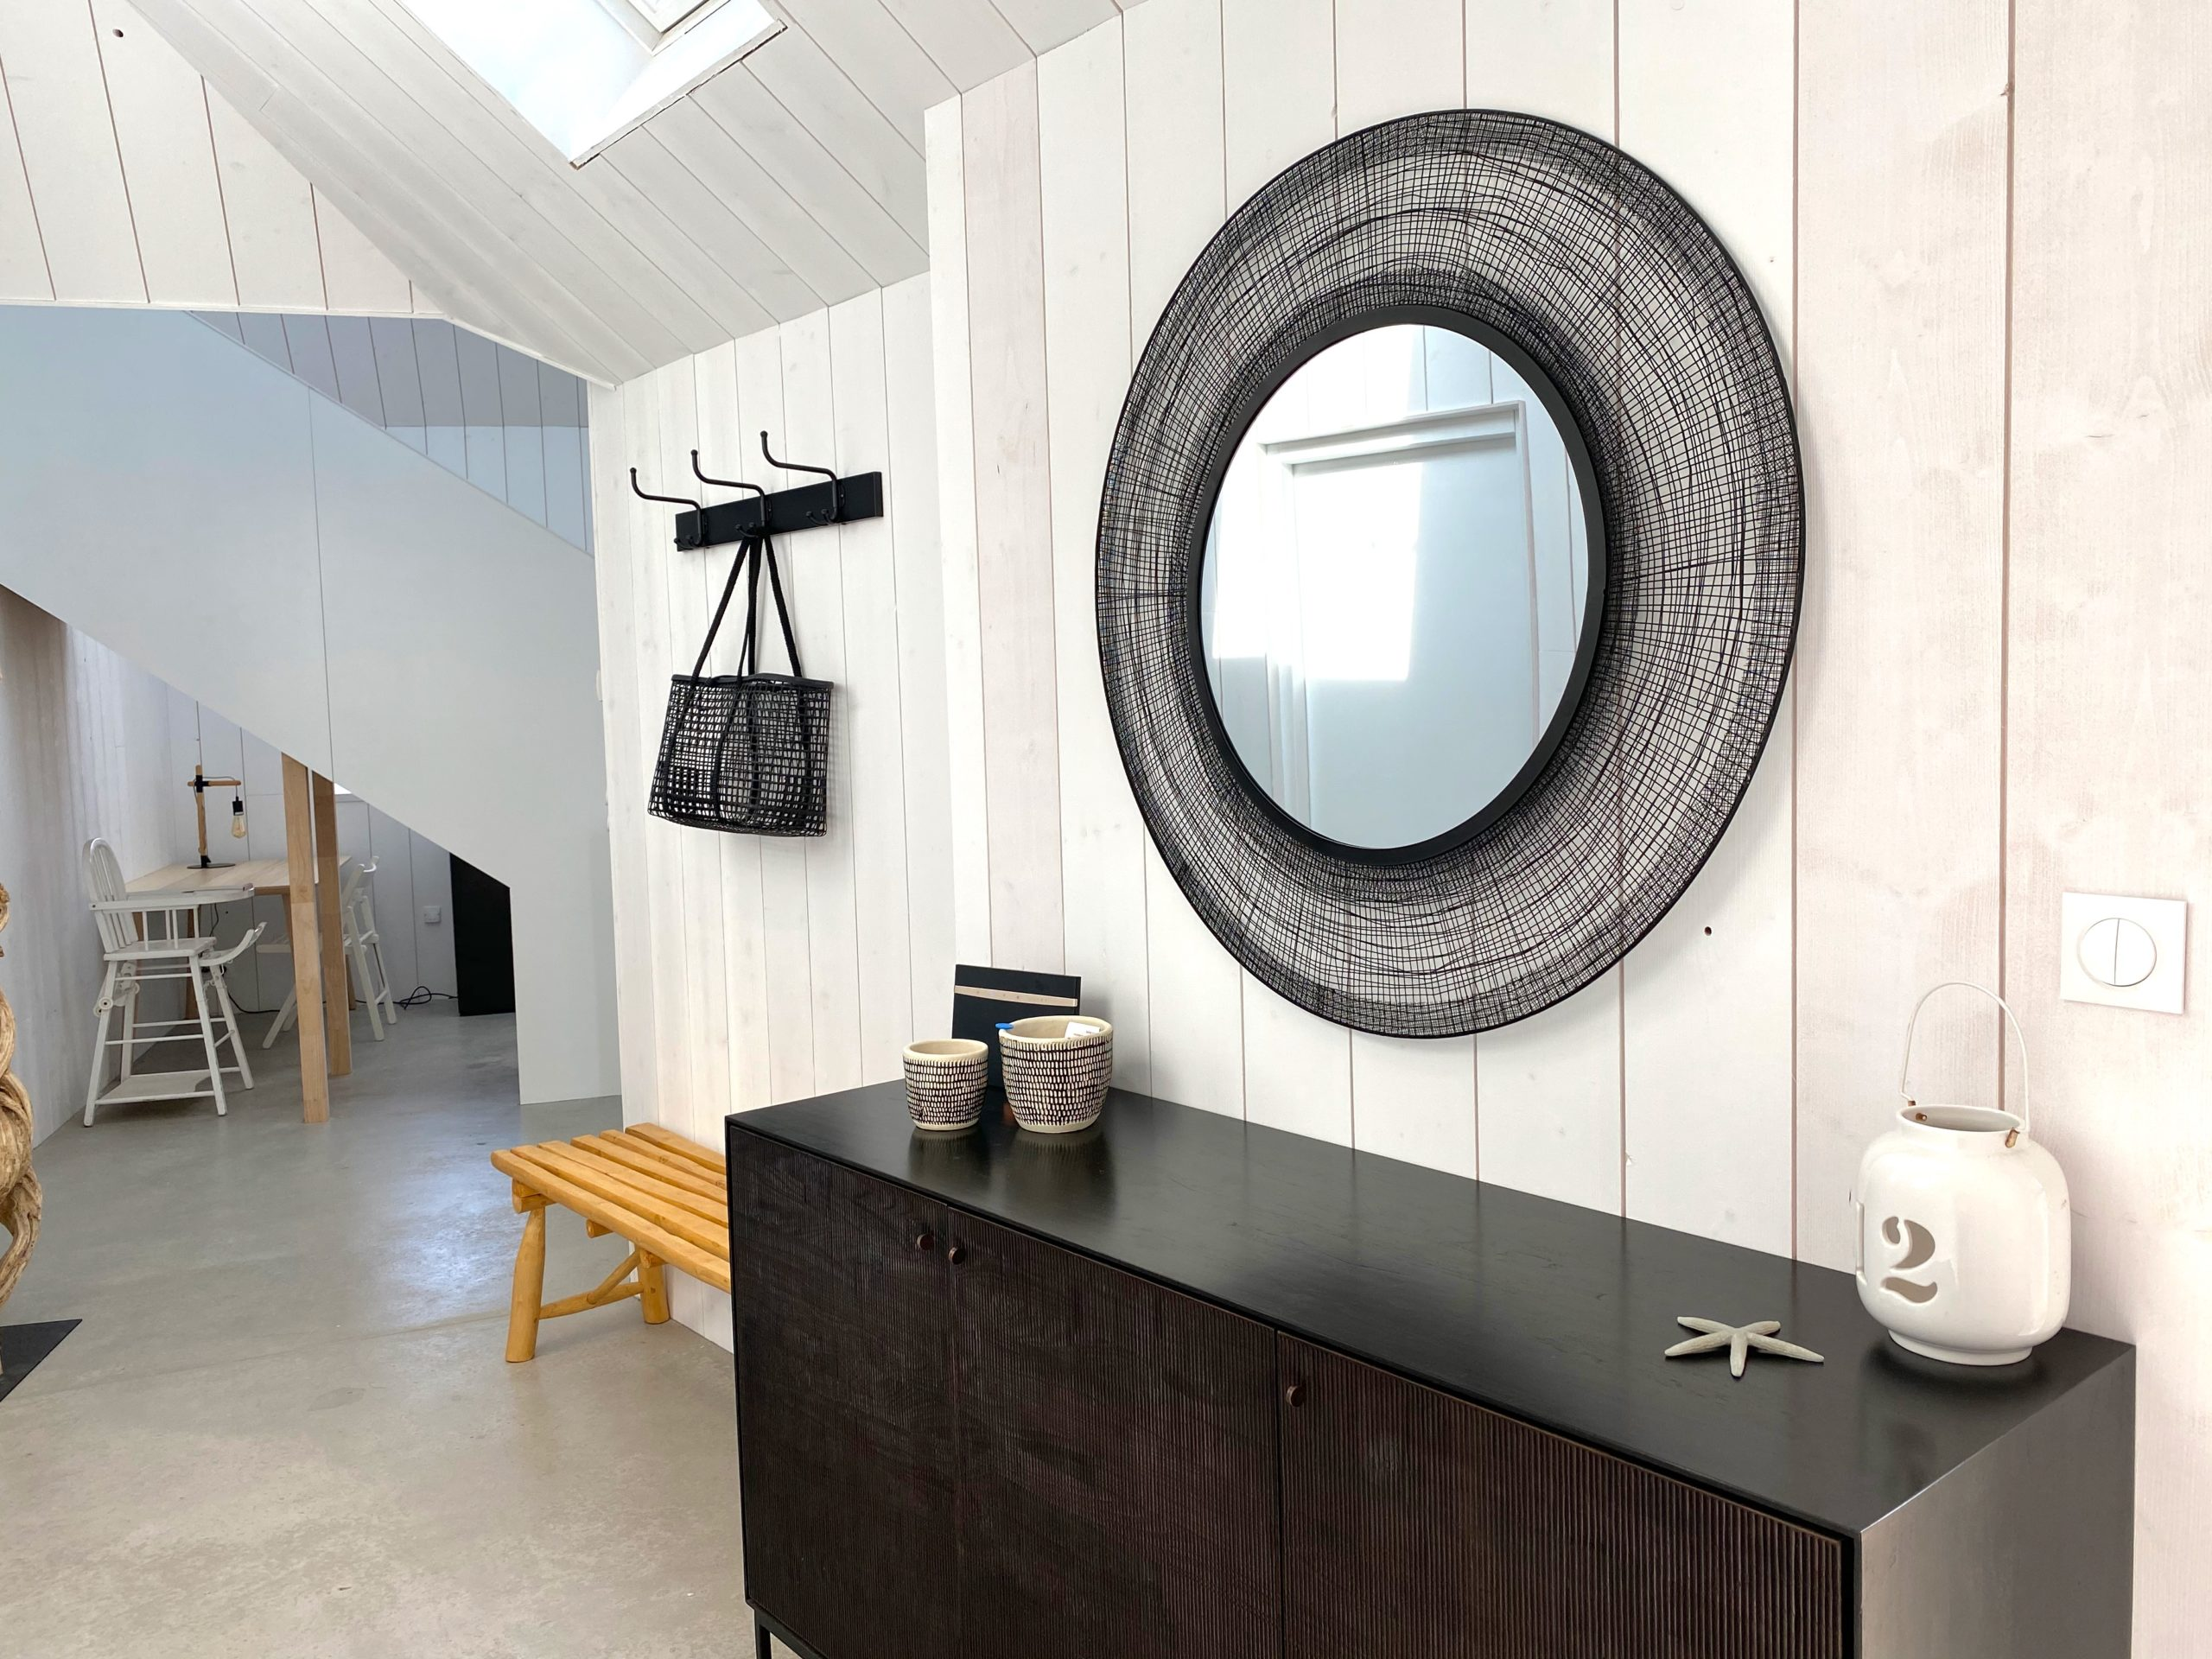 Refined interior decoration with a surfer cabin spirit